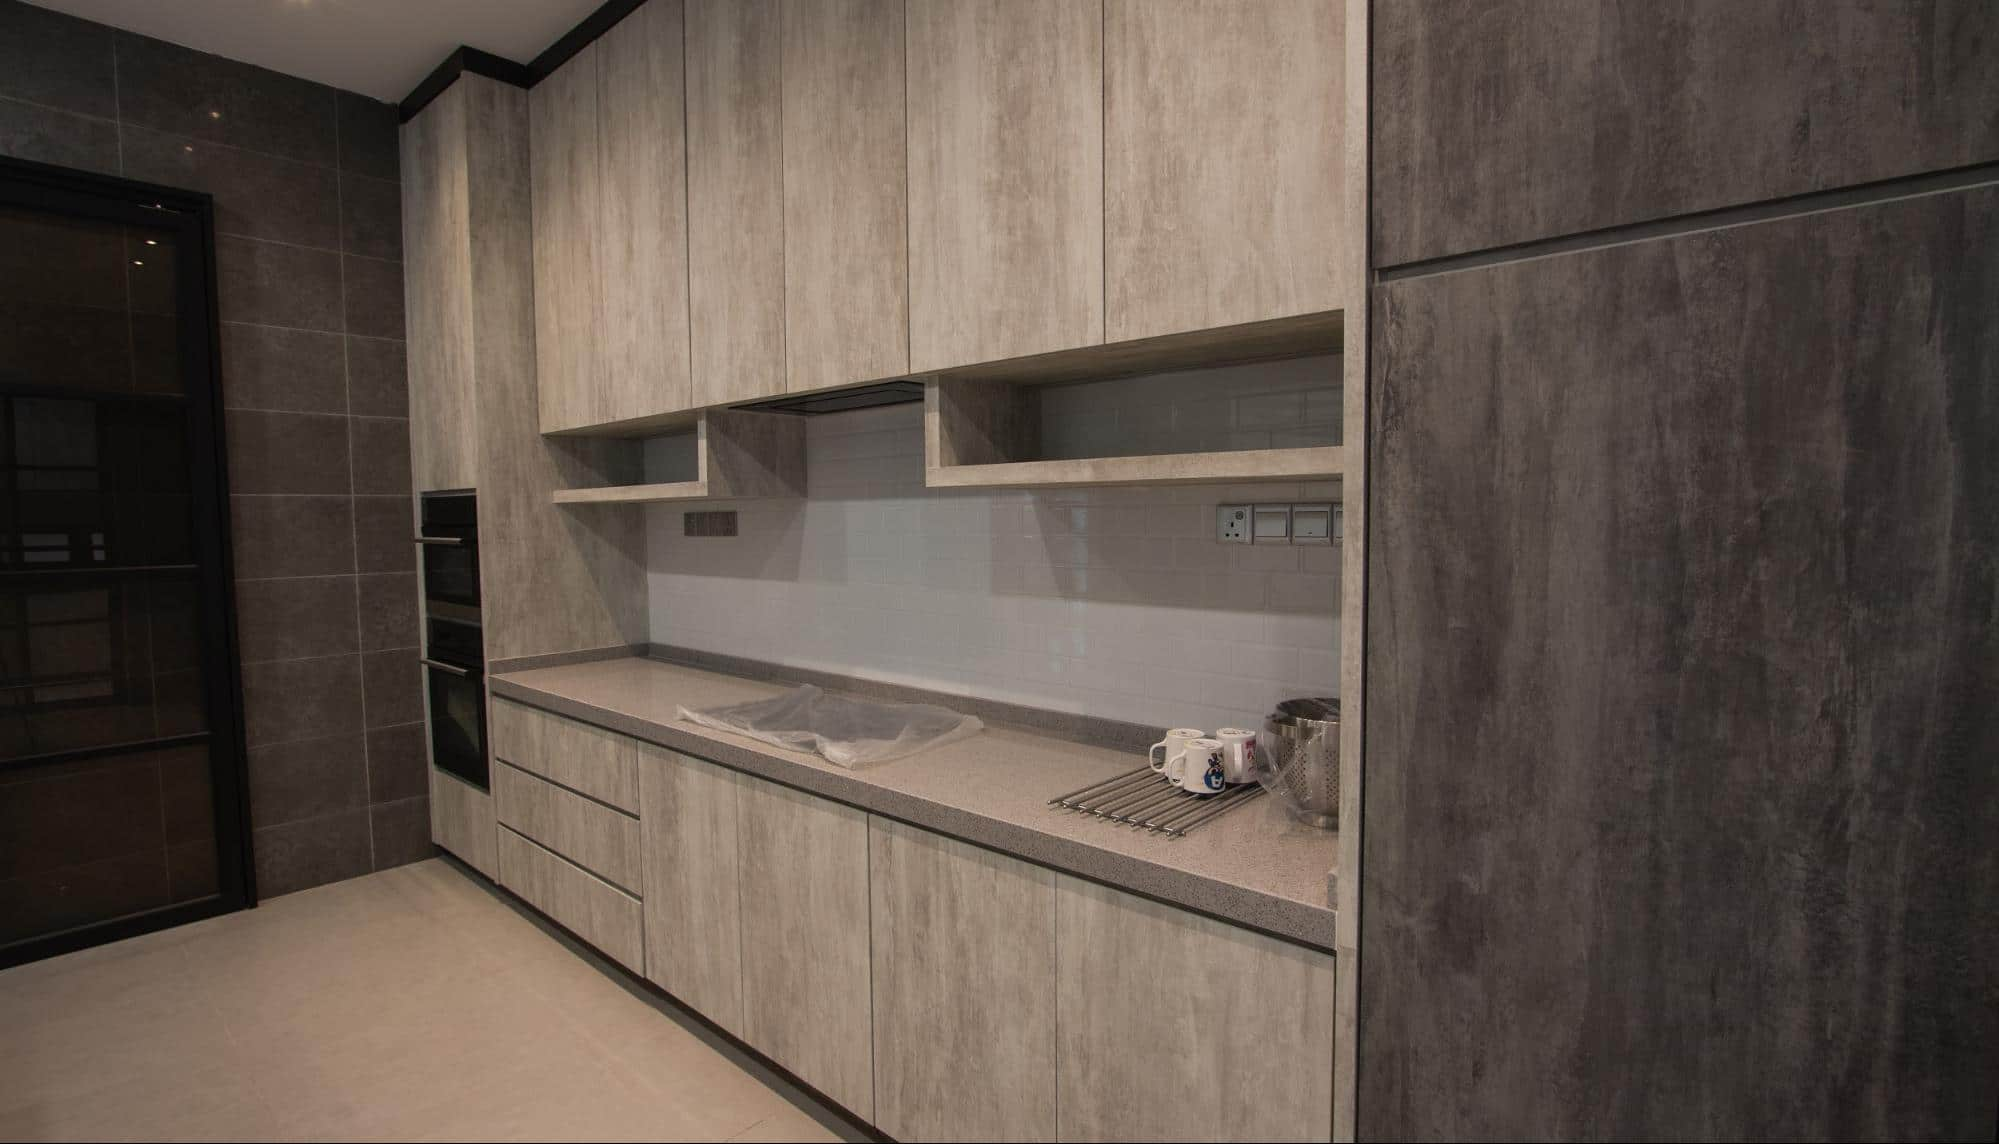 Dry kitchen cabinetry in grey modern industrial tones